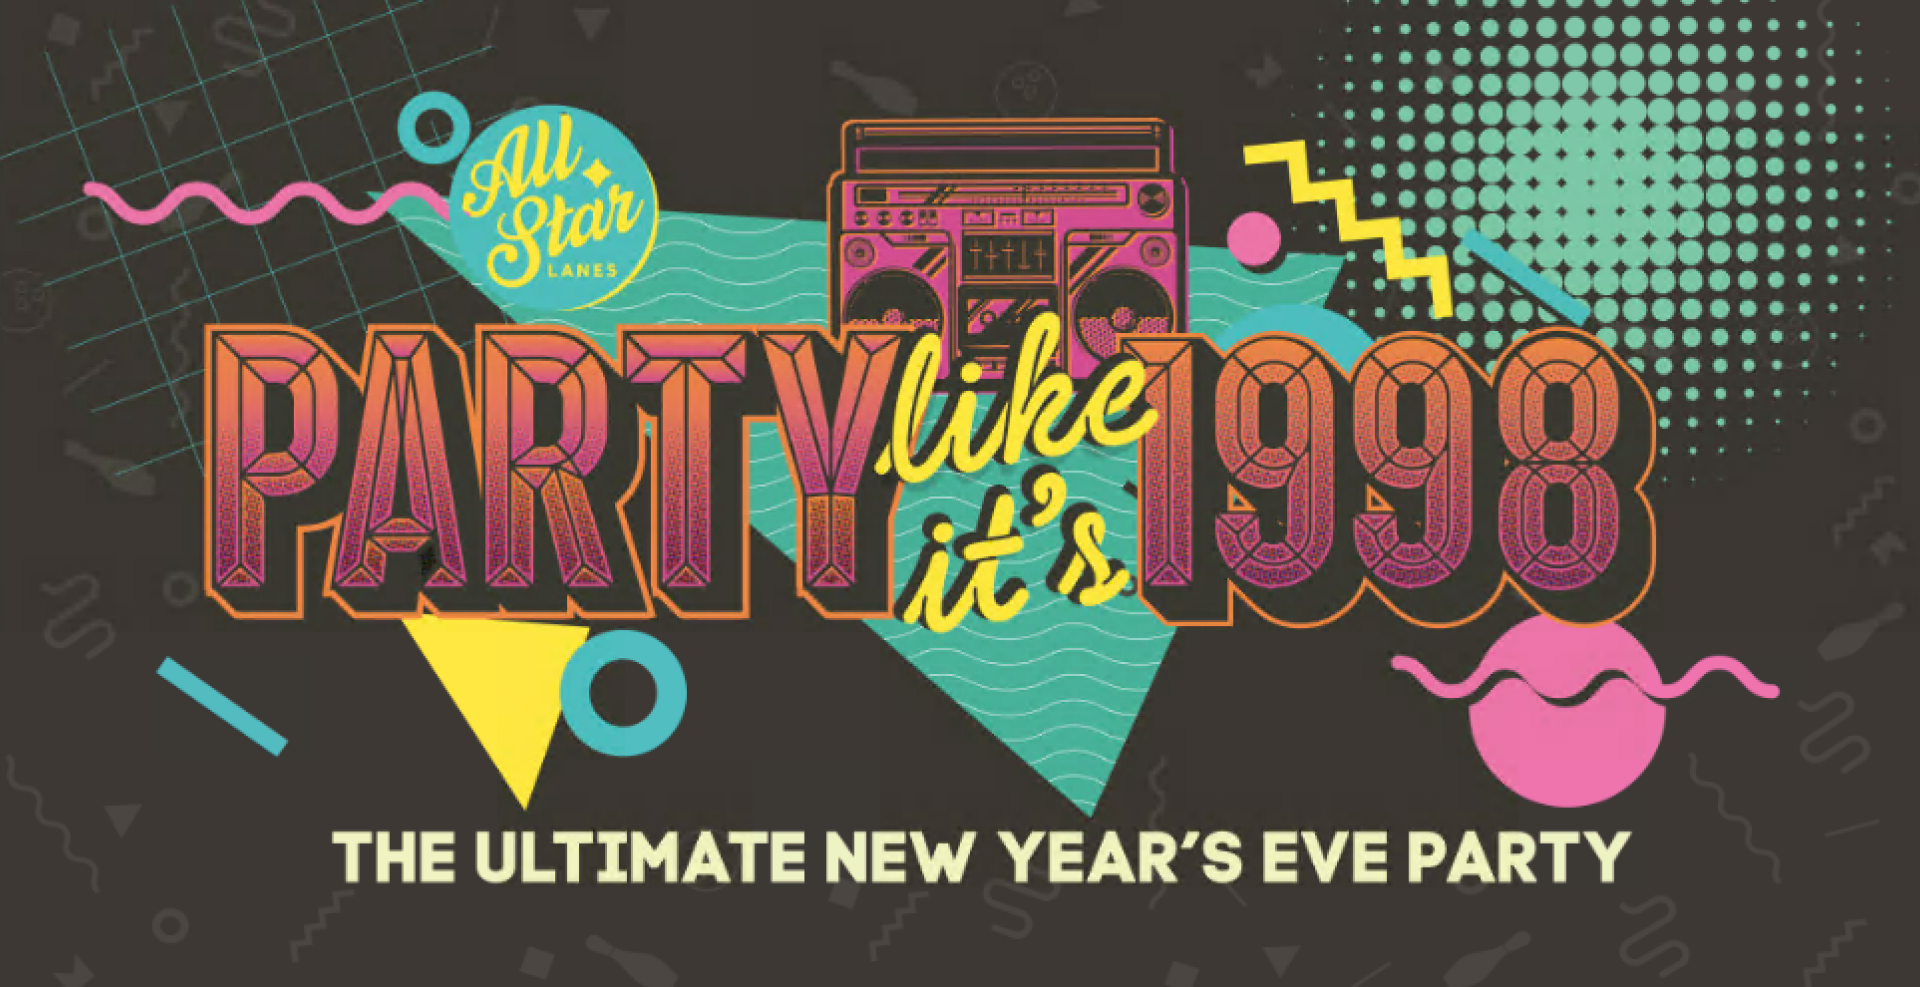 New Year's Eve - Party like it's 1998 at All Star Lanes